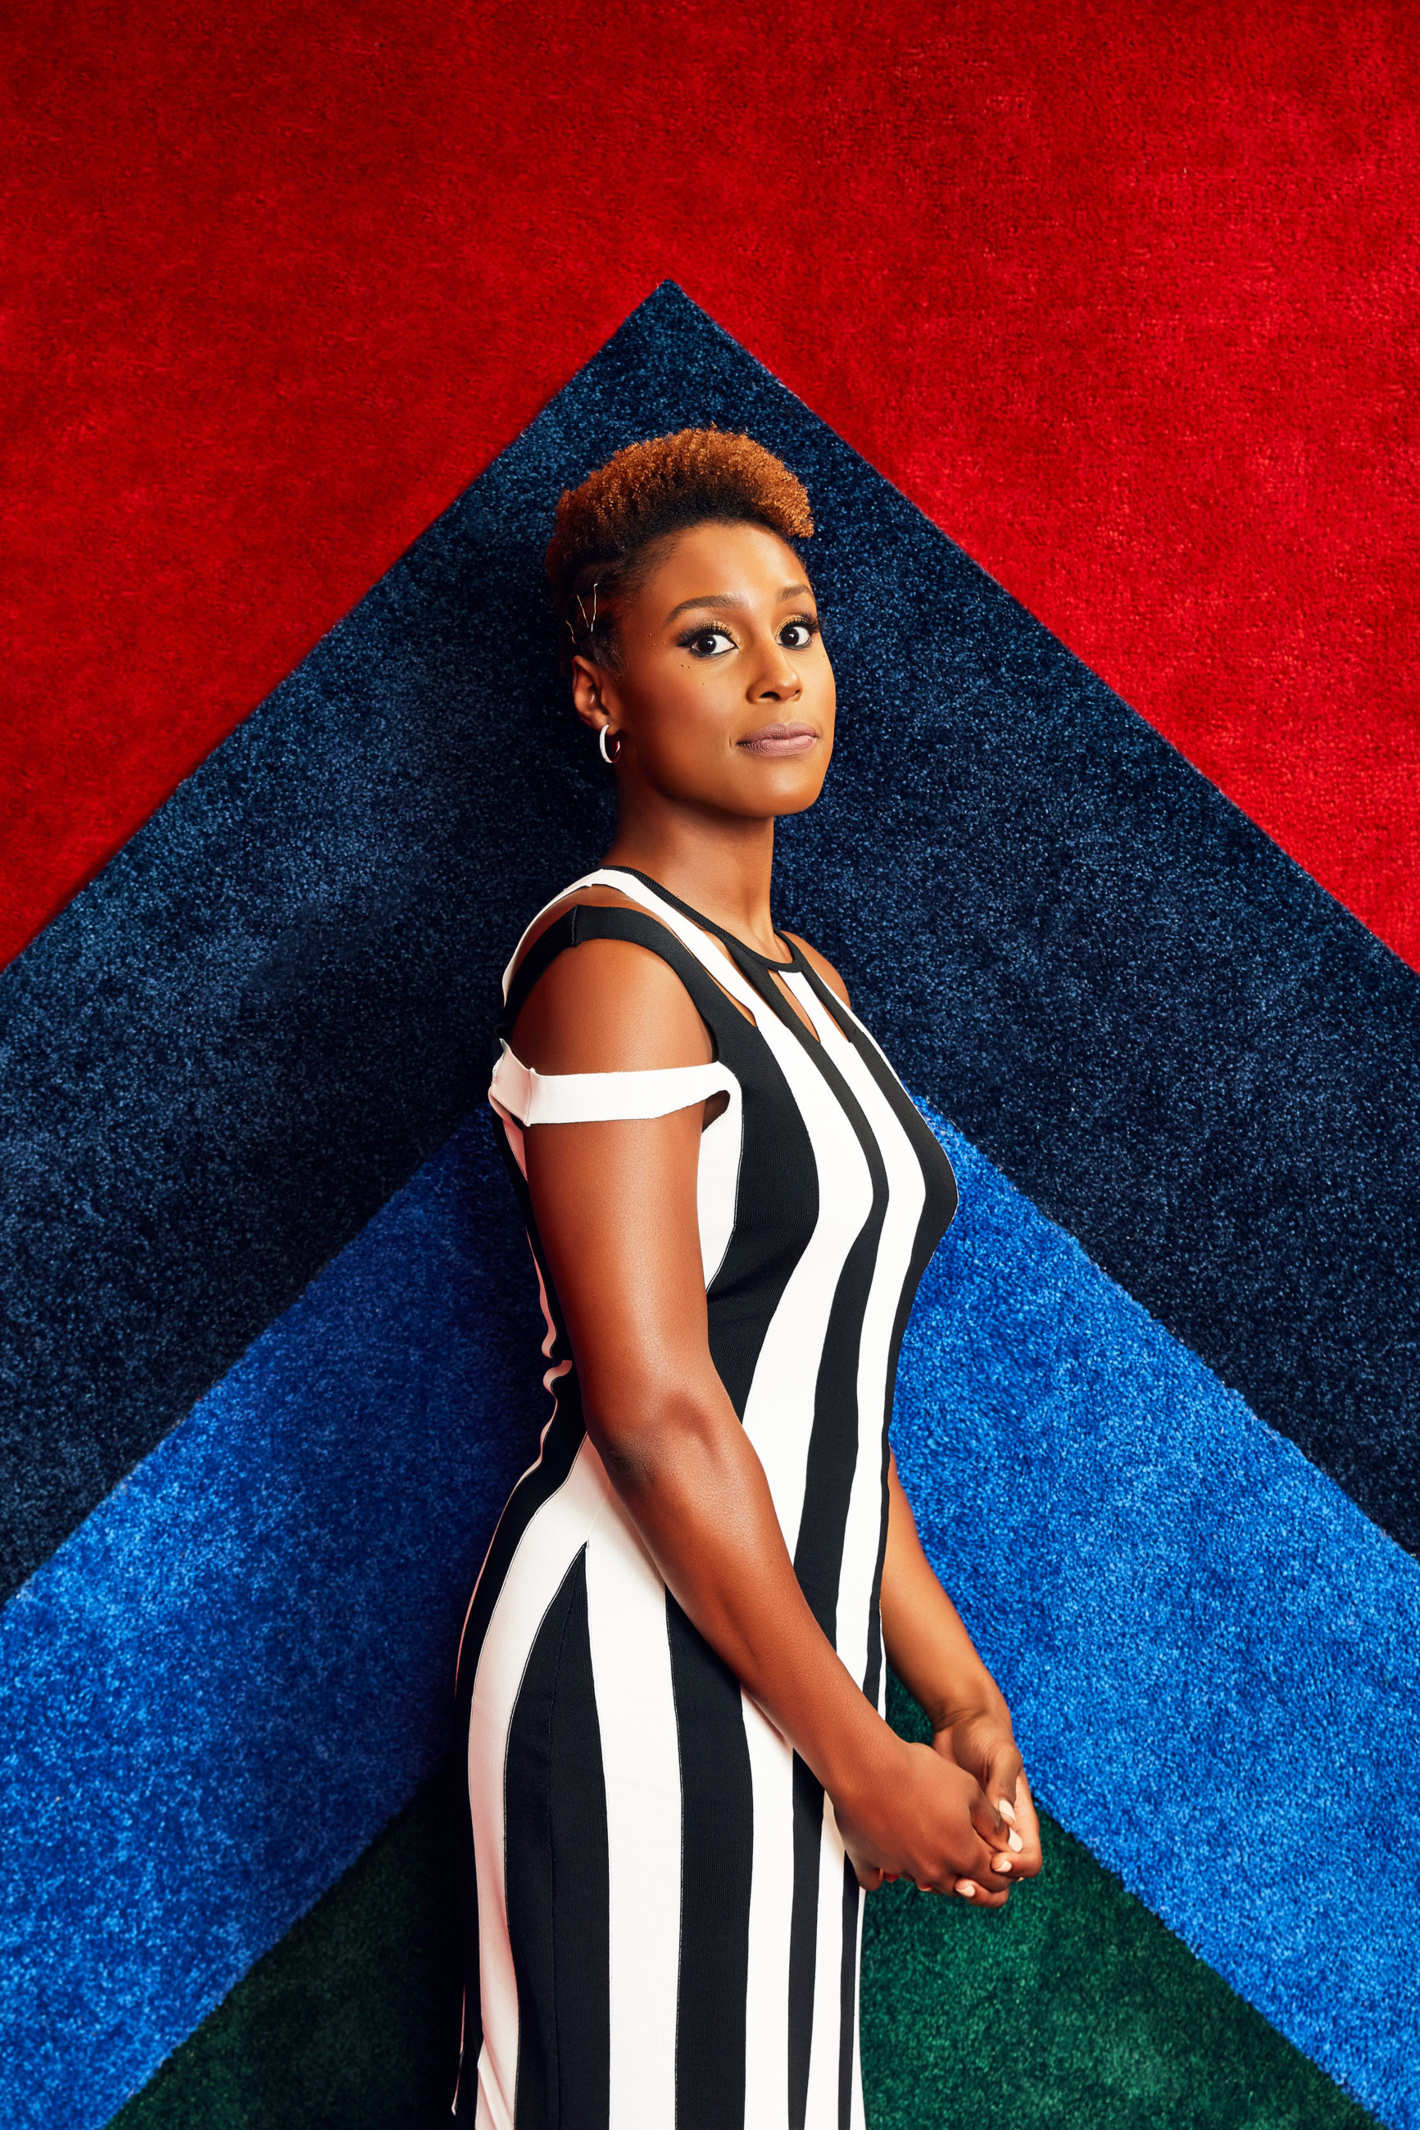 Issa Rae - First black woman to create a premium cable series